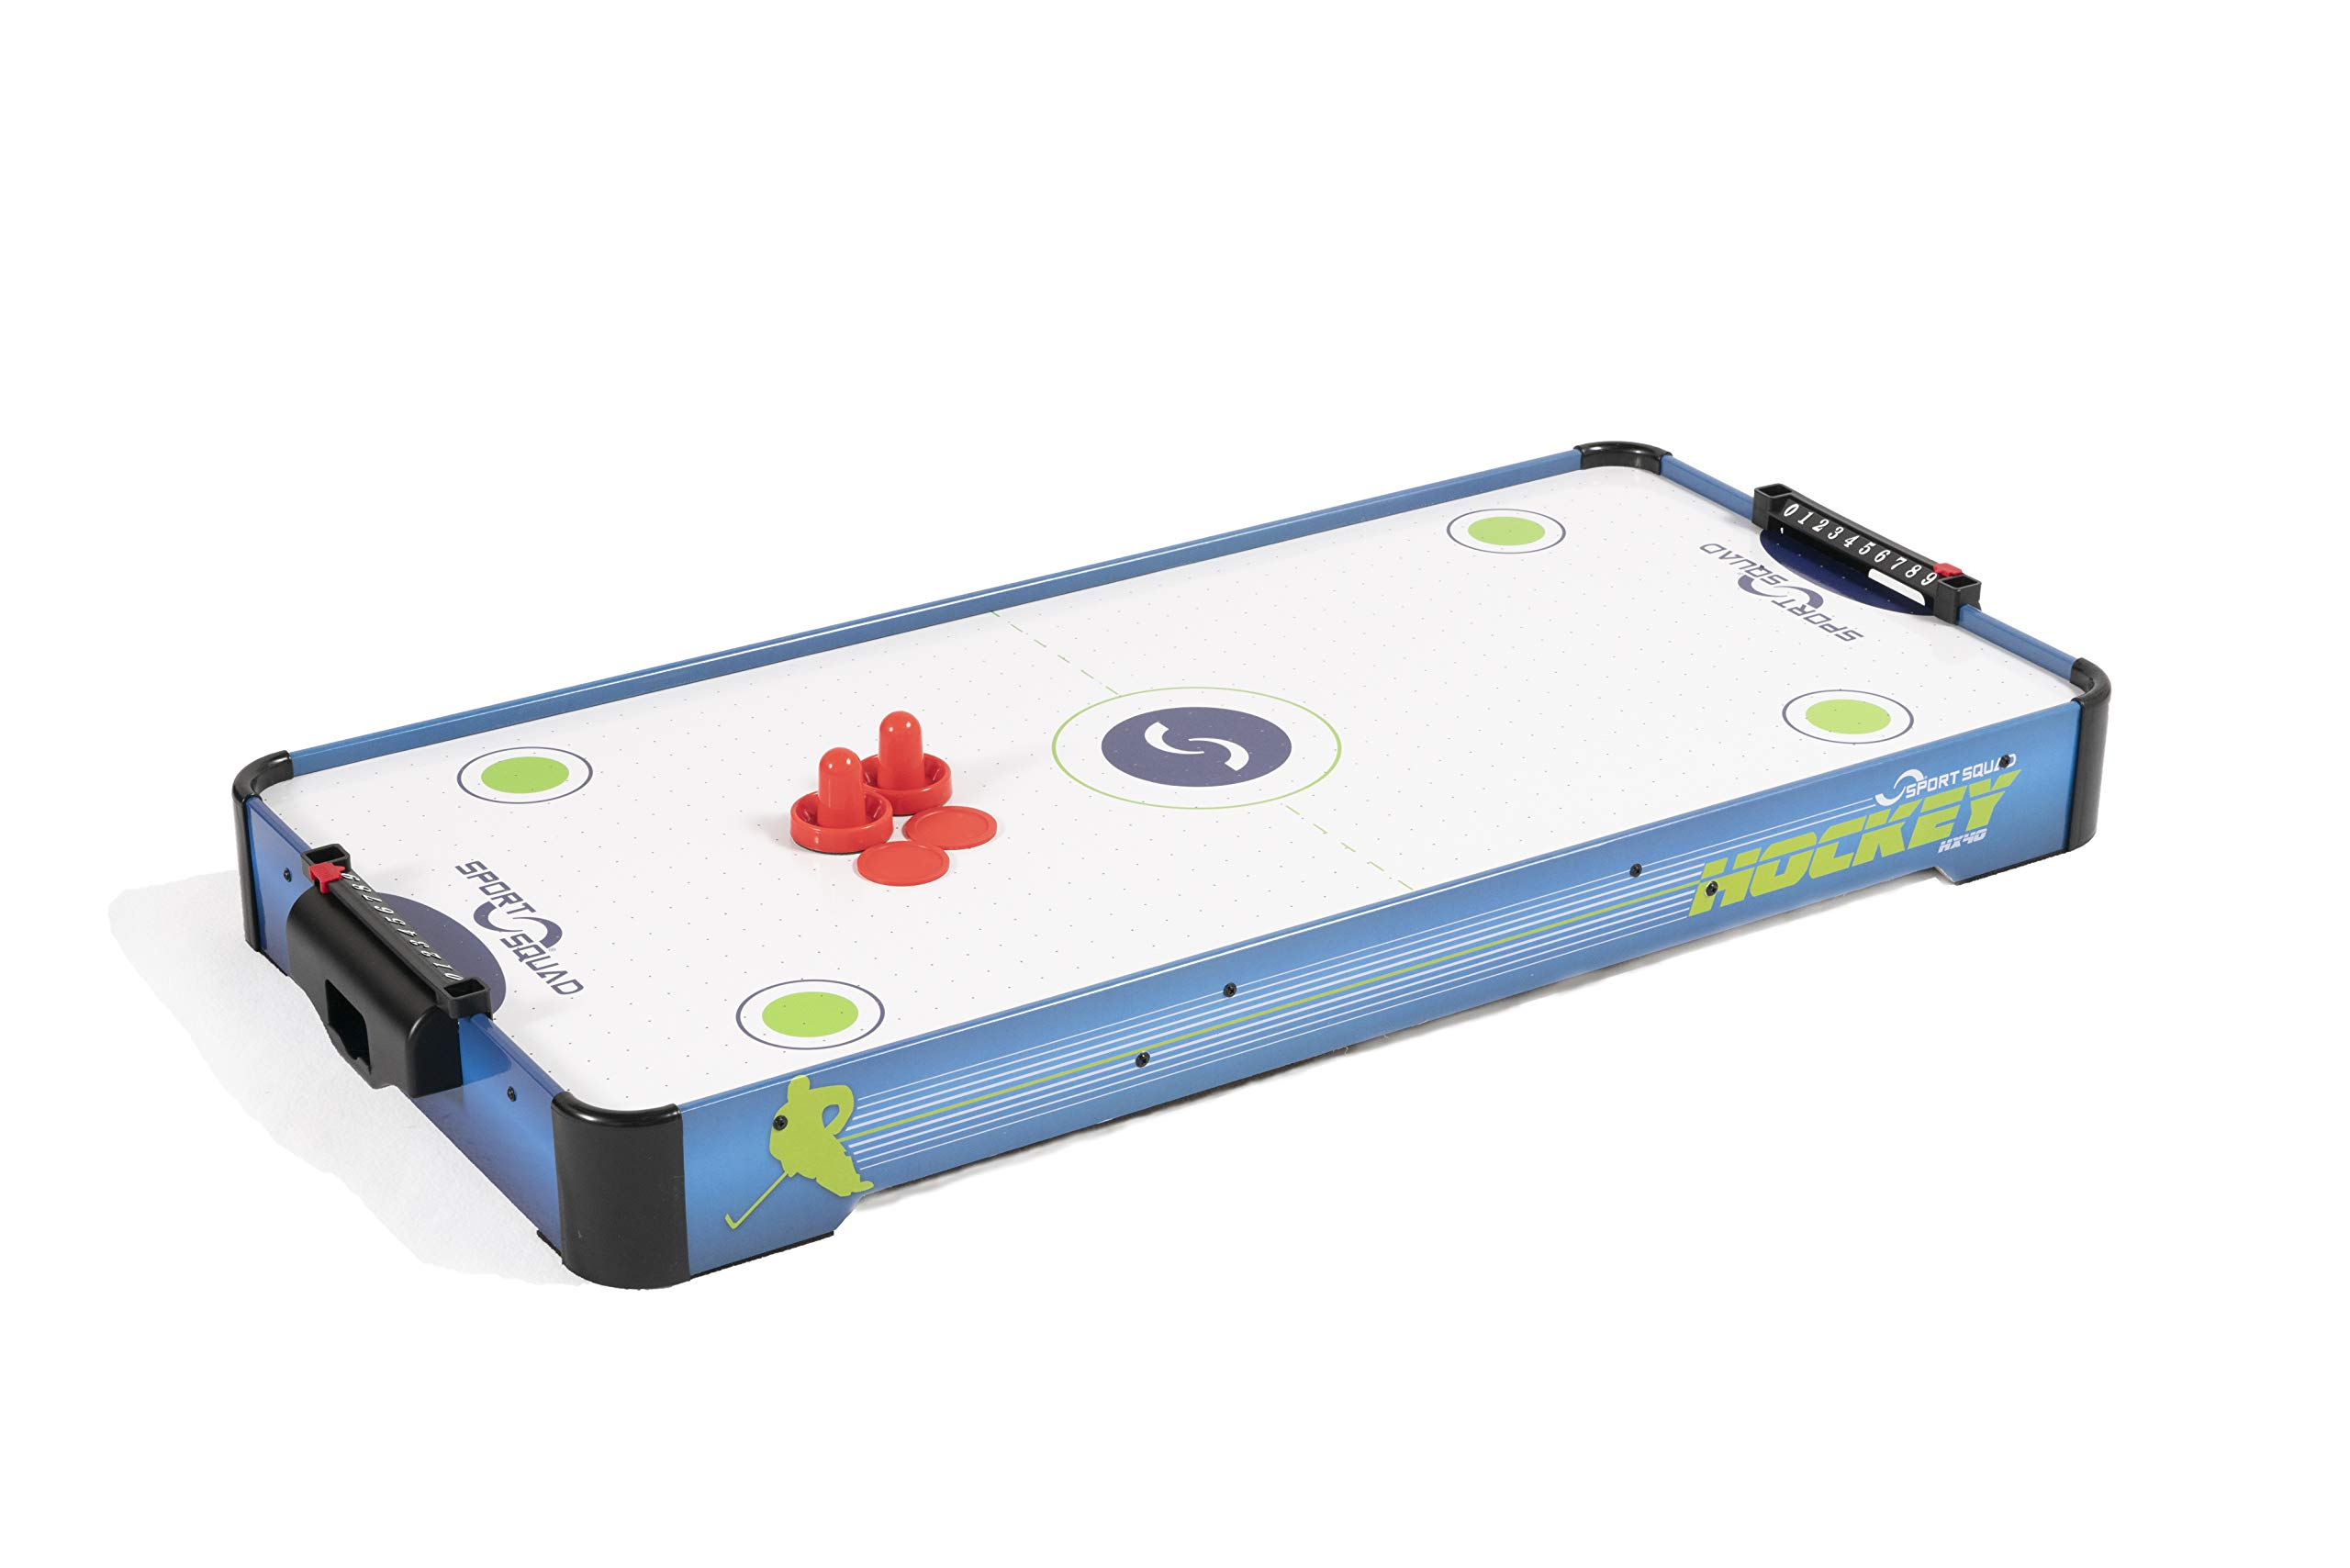 Sport Squad HX40 40 inch Table Top Air Hockey Table for Kids and Adults - Electric Motor Fan - Includes 2 Pushers and 2 Air Hockey Pucks - Great for Playing on The Floor, Tabletop, or Dorm Room by Sport Squad